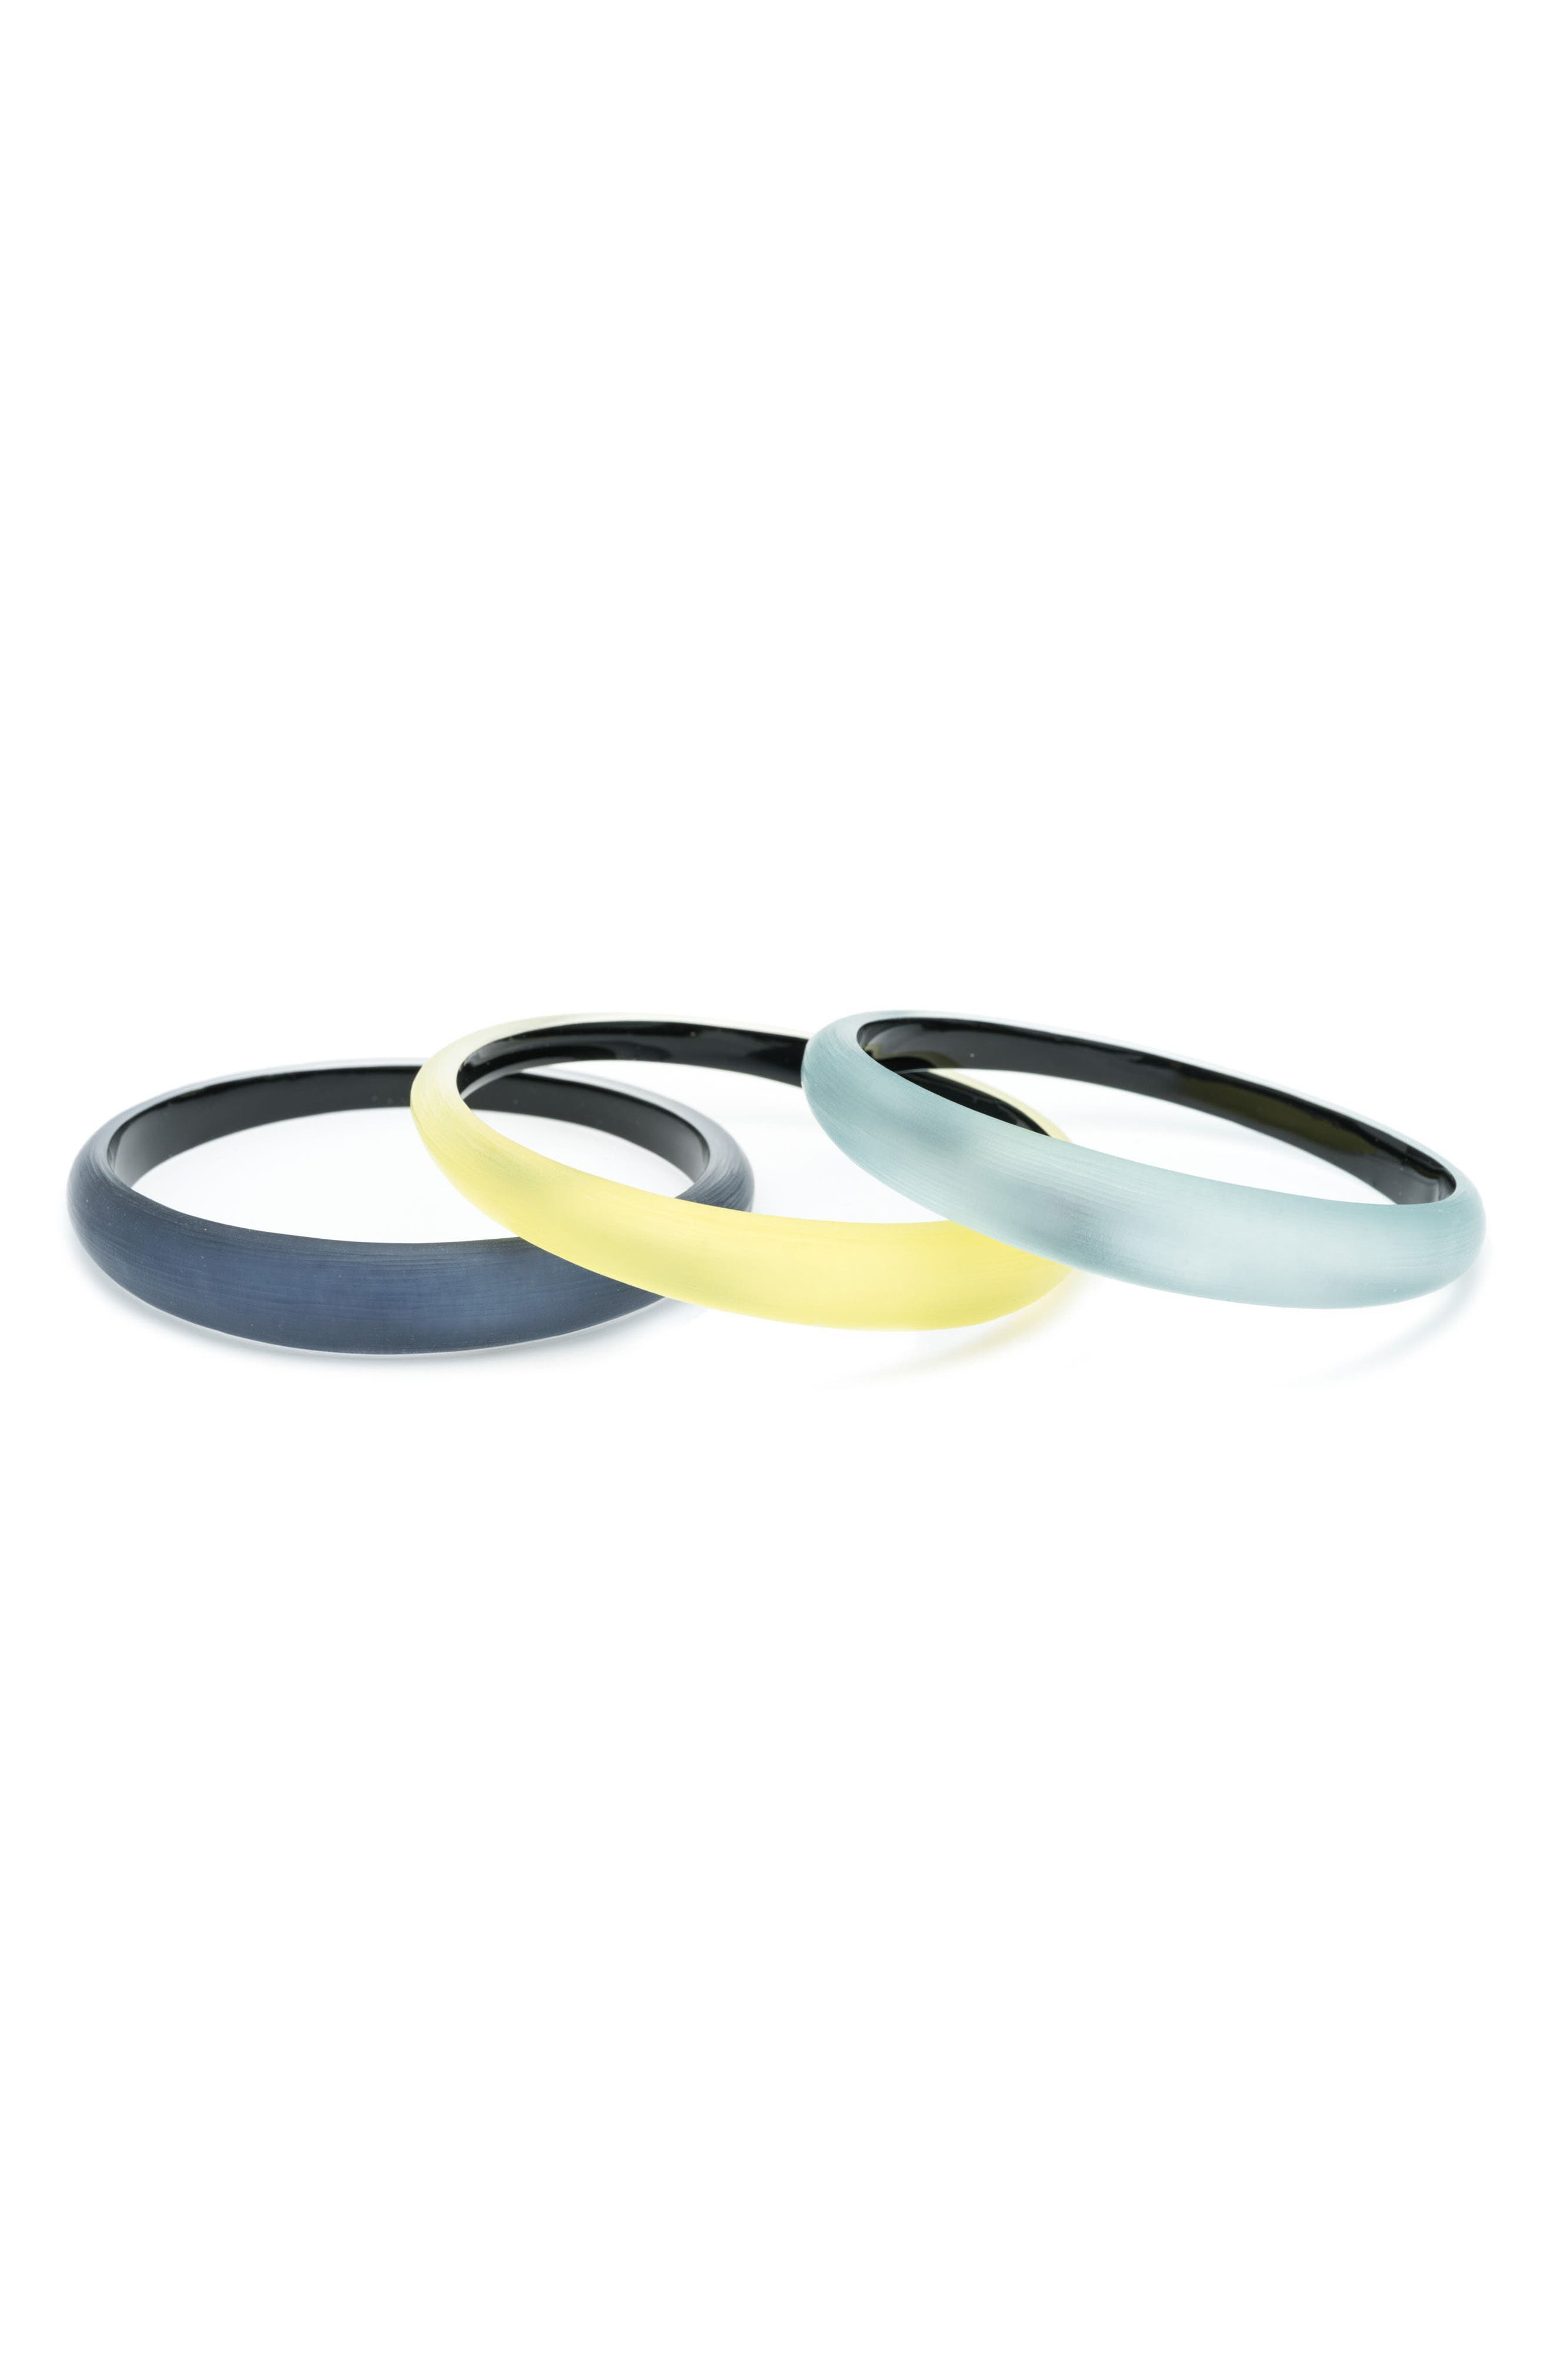 Alex Bittar Set of 3 Tapered Lucite<sup>®</sup> Bangle Bracelets,                             Alternate thumbnail 2, color,                             Ocean/ Grey/ Titanium Yellow